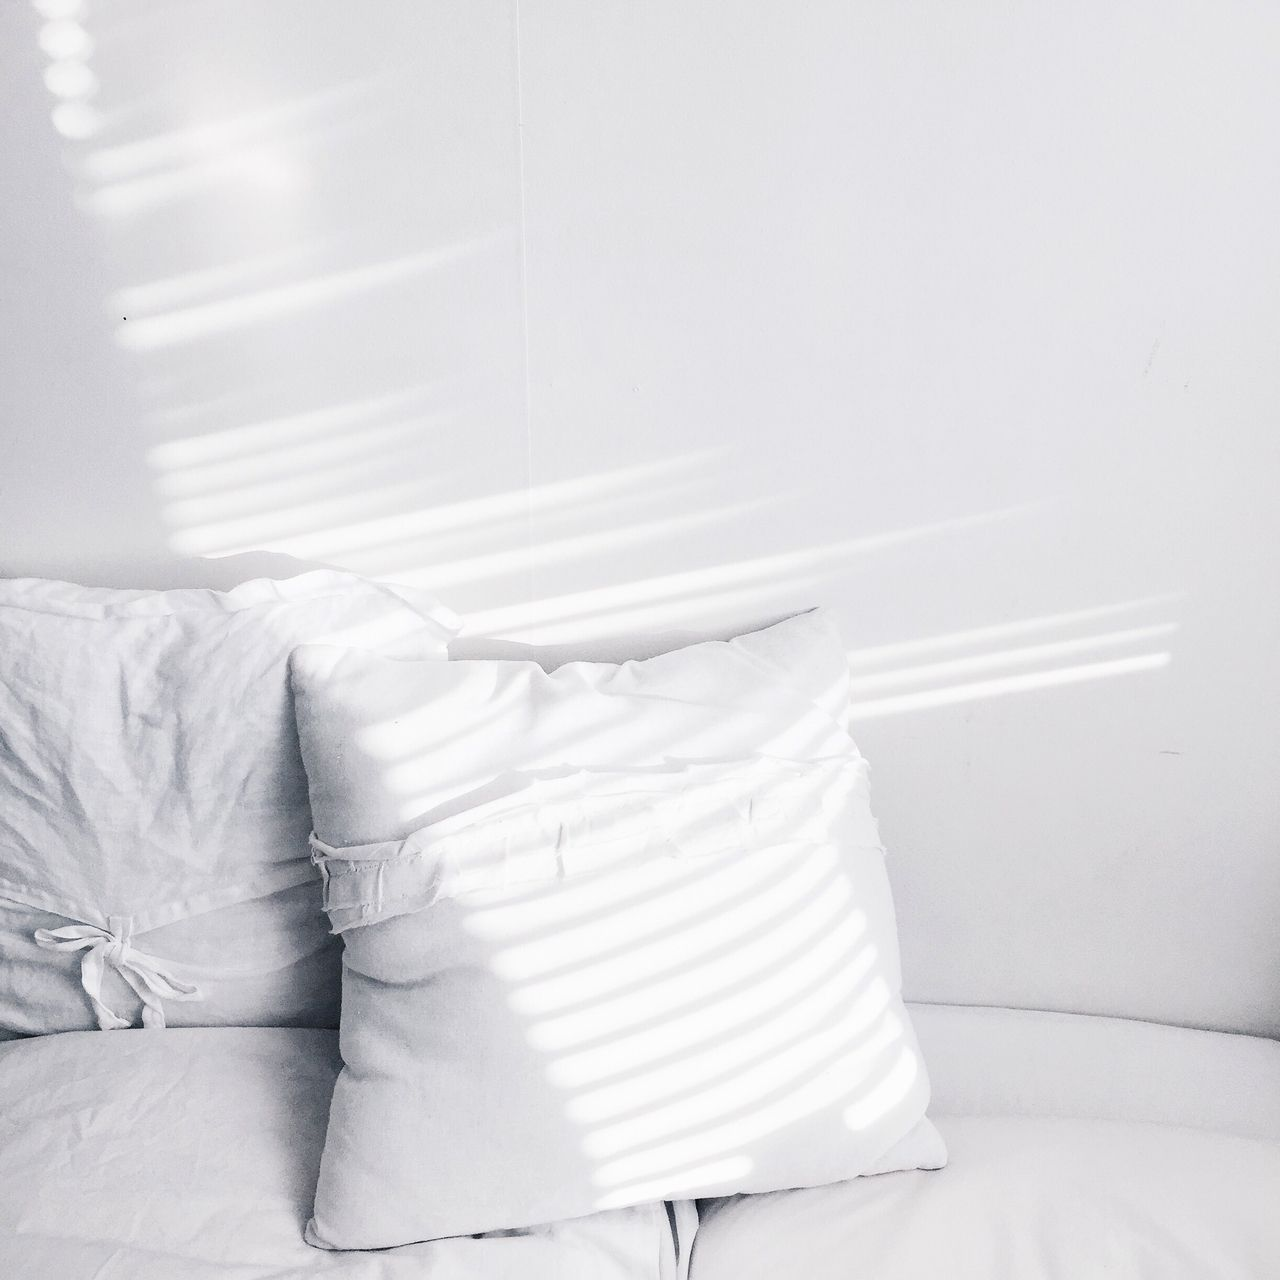 White bed sheets tumblr - Pinterest Mylittlejourney Tumblr Toxicangel Twitter Stef_giordano Ig